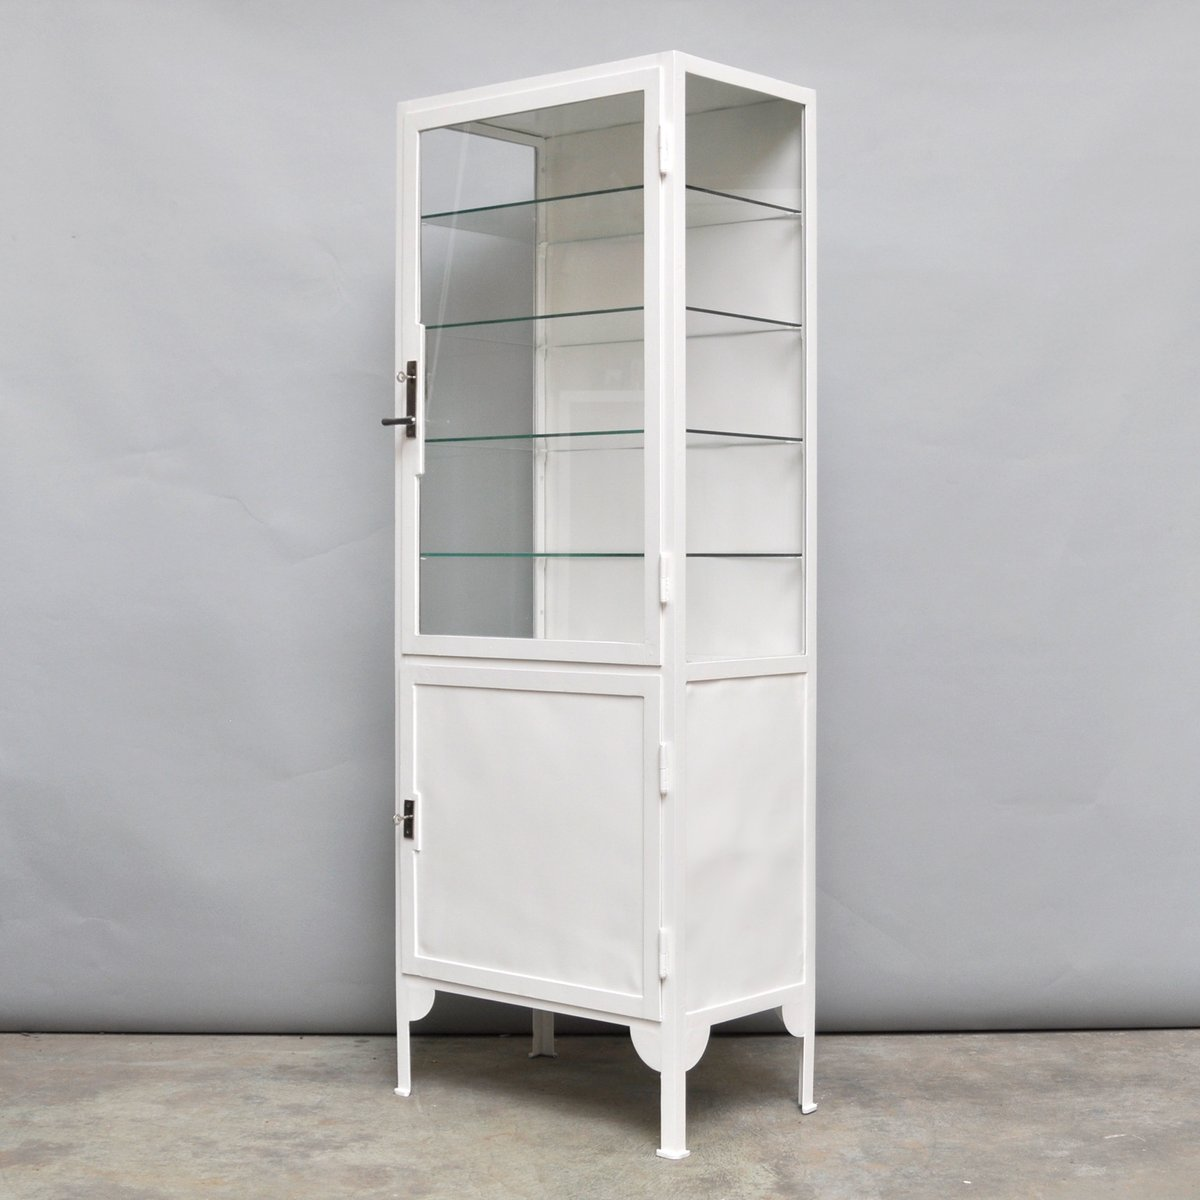 Vintage Steel and Clear Glass Medicine Cabinet, 1940s for sale at ...